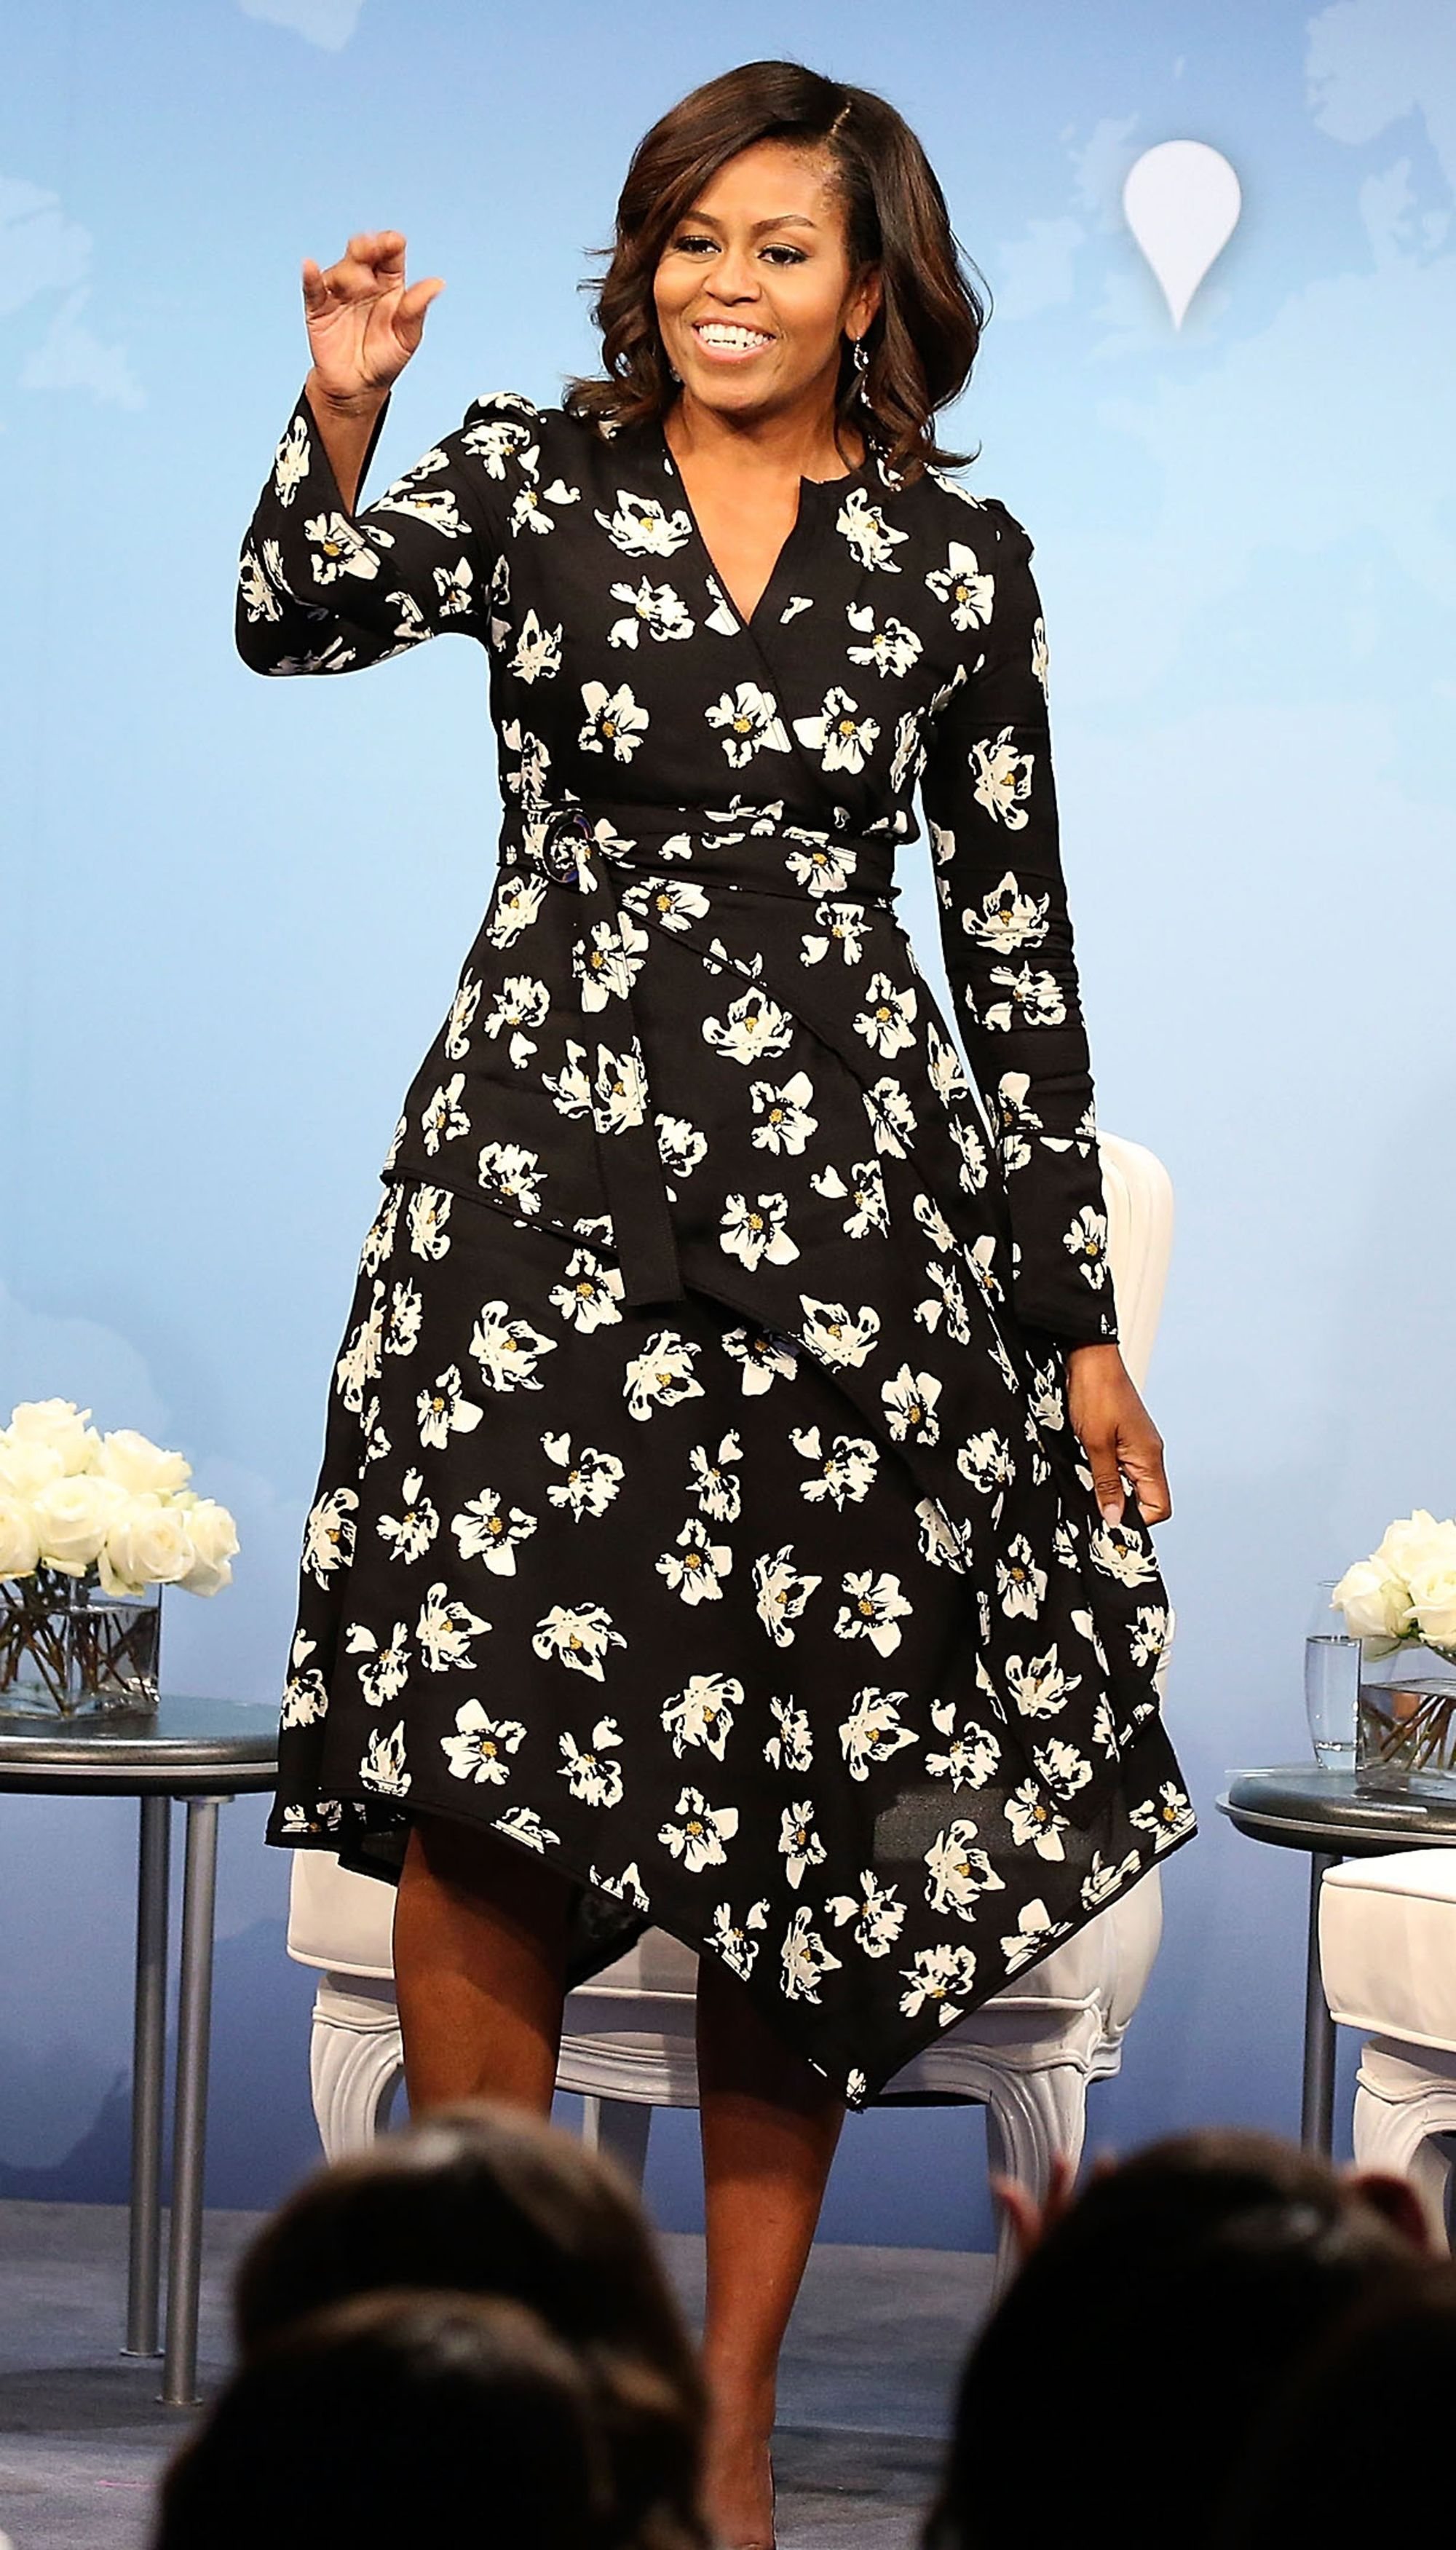 e745bdc6a03 Michelle Obama s Best Looks Ever - 2016 - Black Floral Dress from  InStyle.com